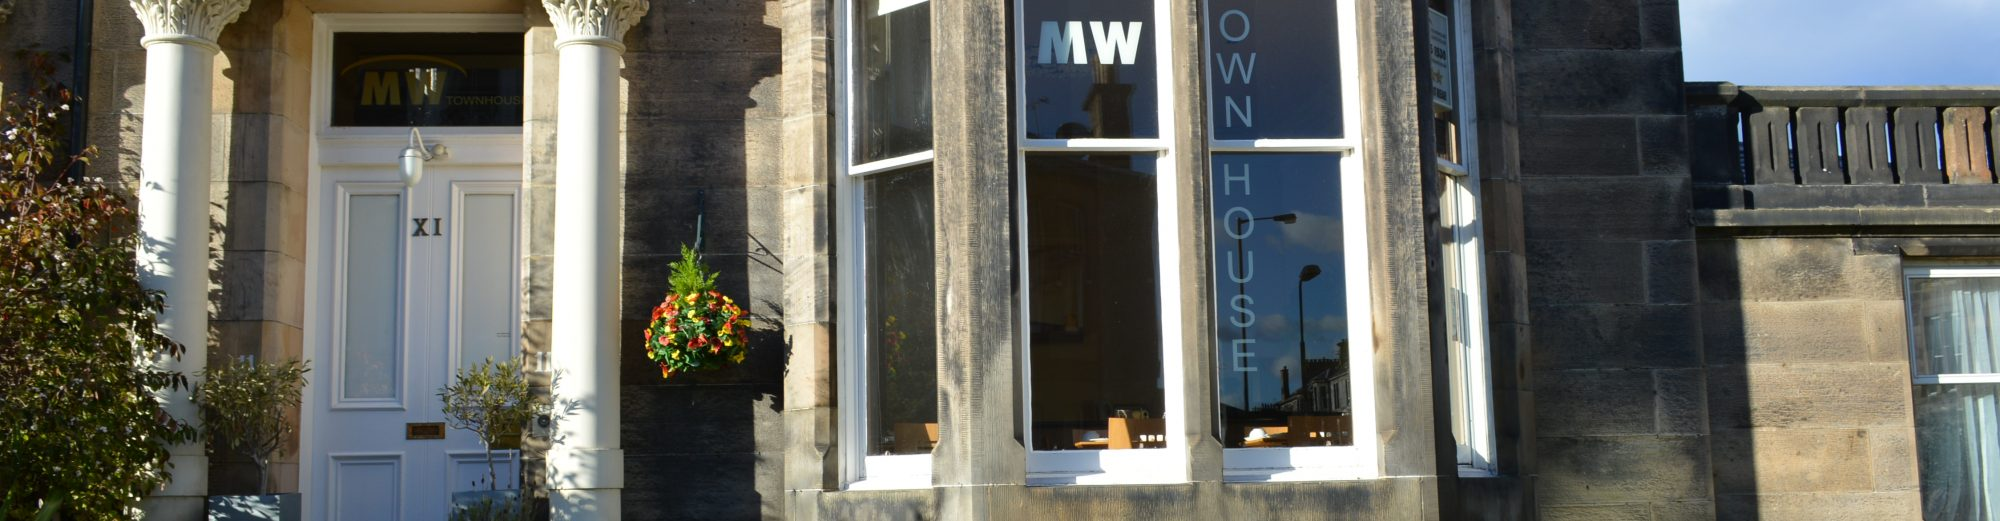 The MW Townhouse Guesthouse in Edinburgh